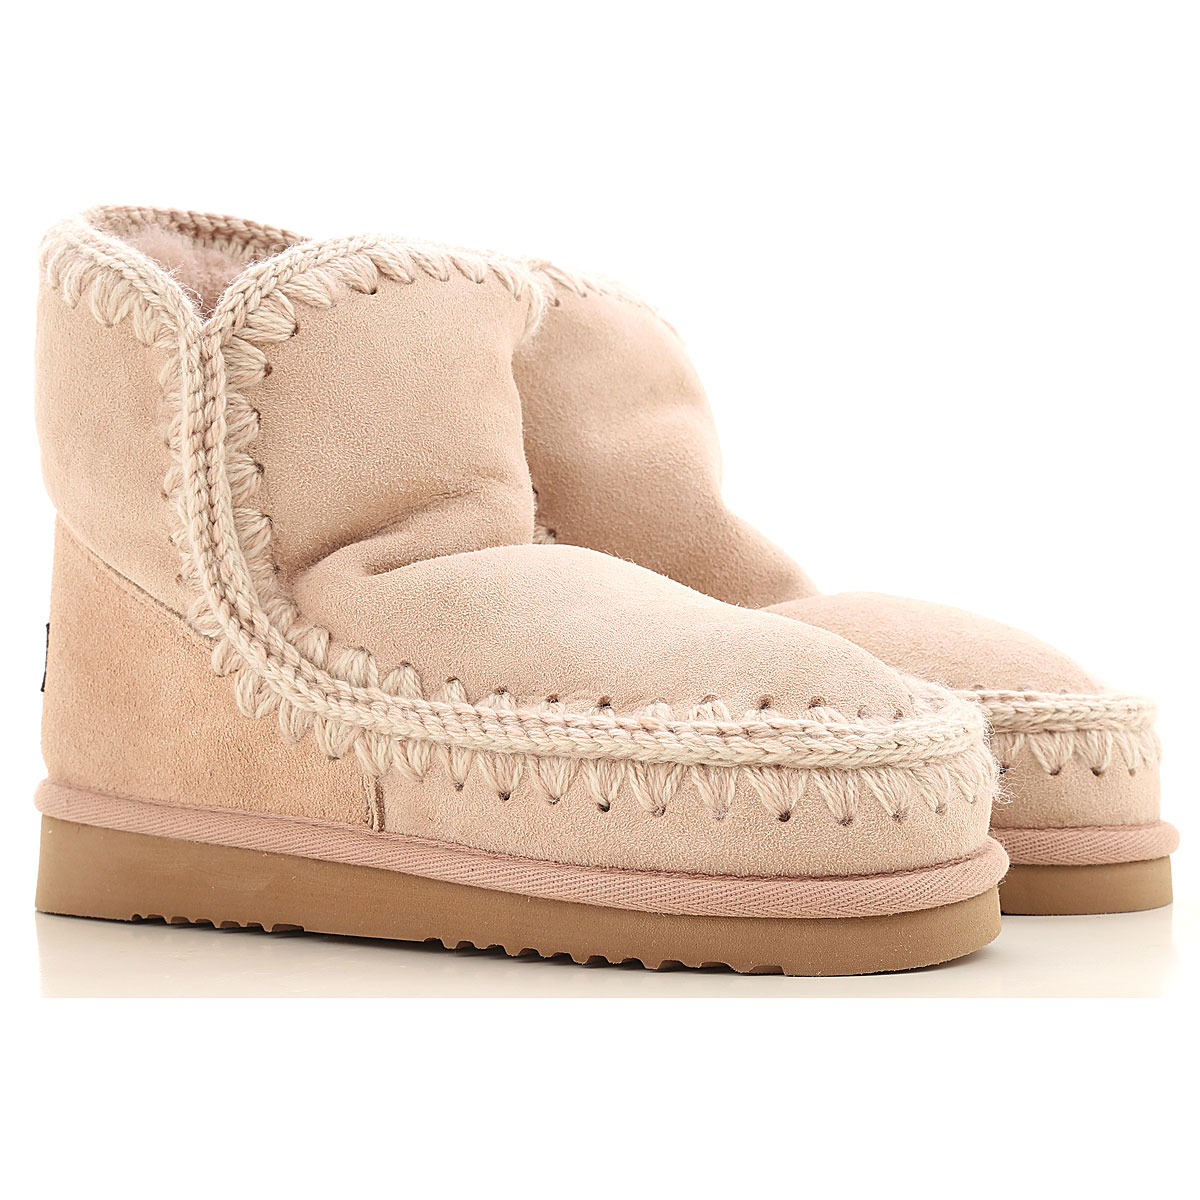 Mou Boots for Women, Booties On Sale, Rose, Suede leather, 2019, EUR 36 - UK 3 - USA 5.5 EUR 37 - UK 4 - USA 6.5